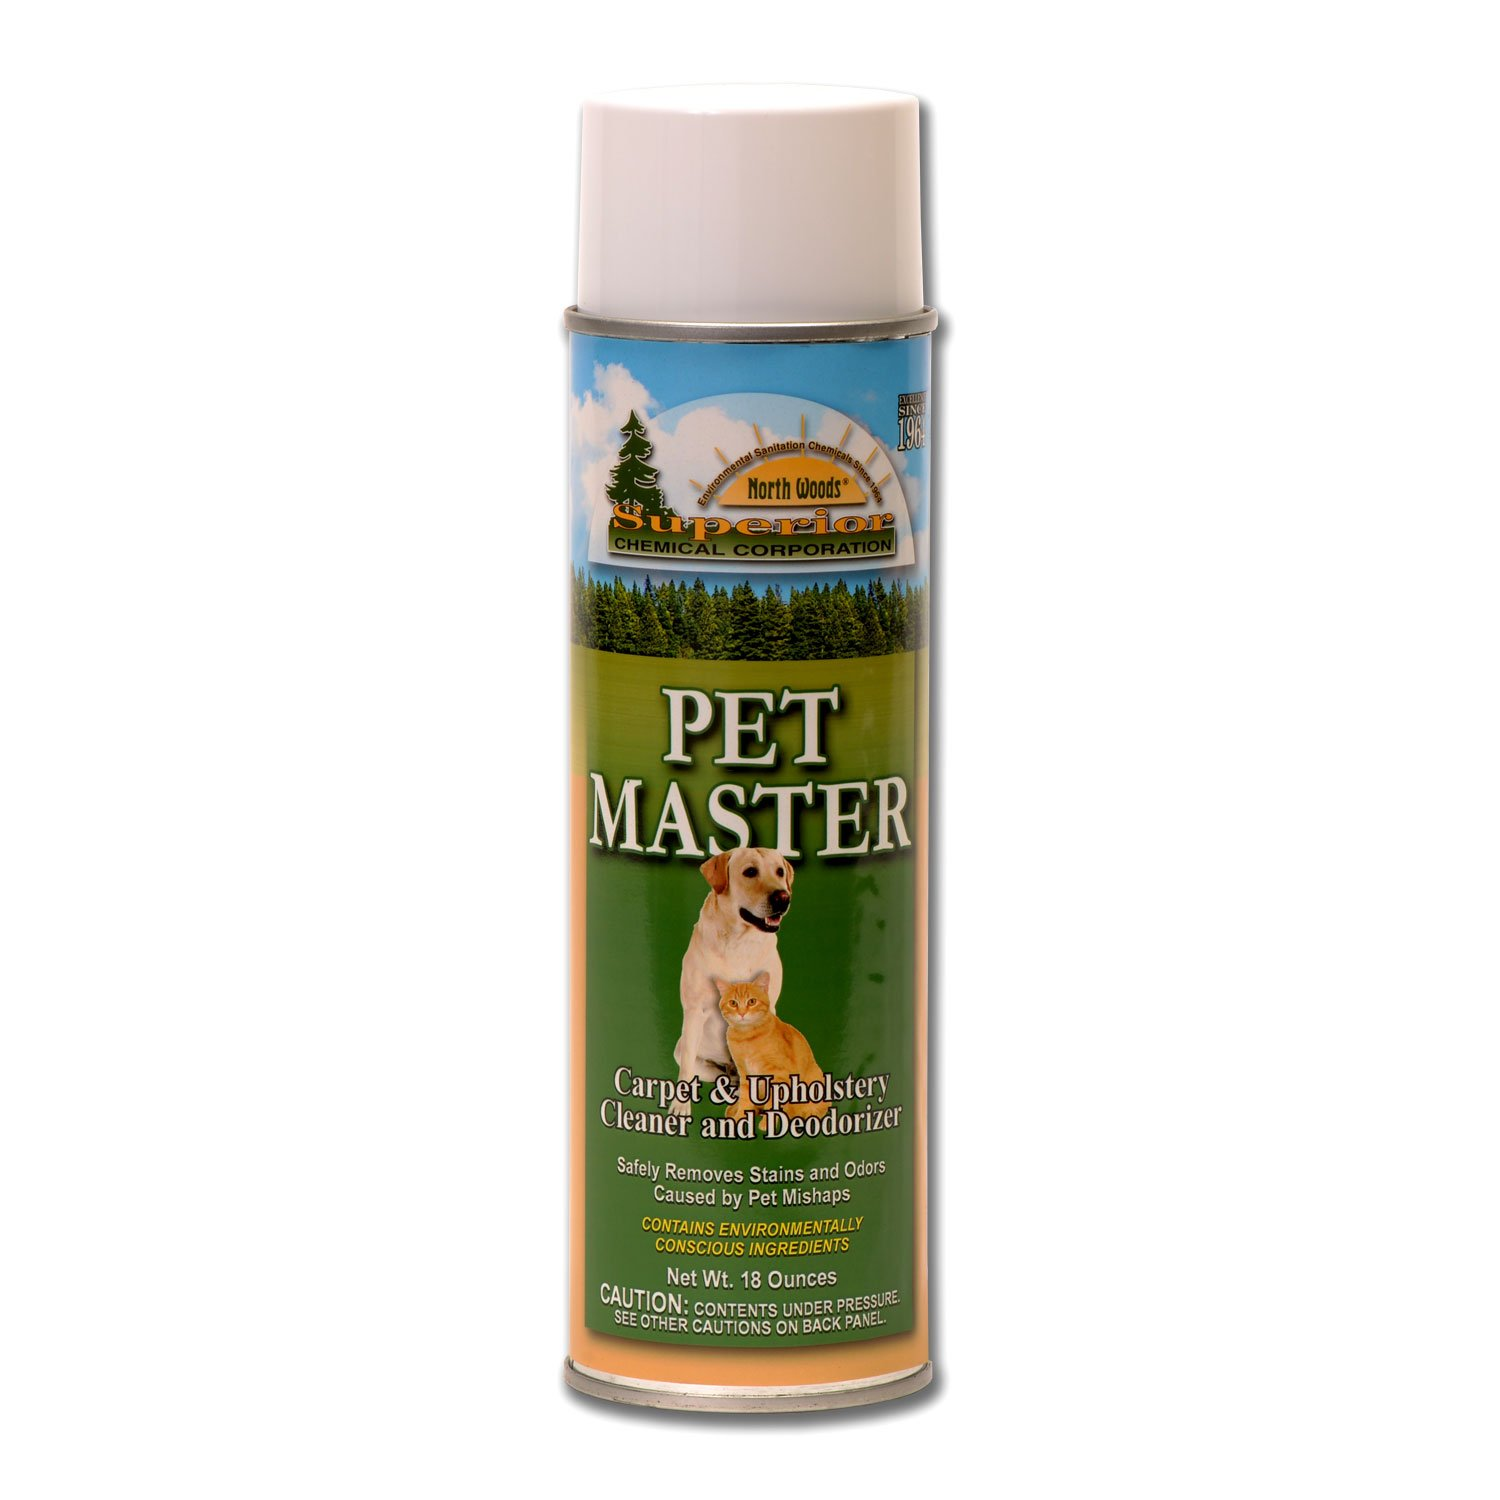 North Woods Pet Master - Pet Stain Remover (Pack of 12)